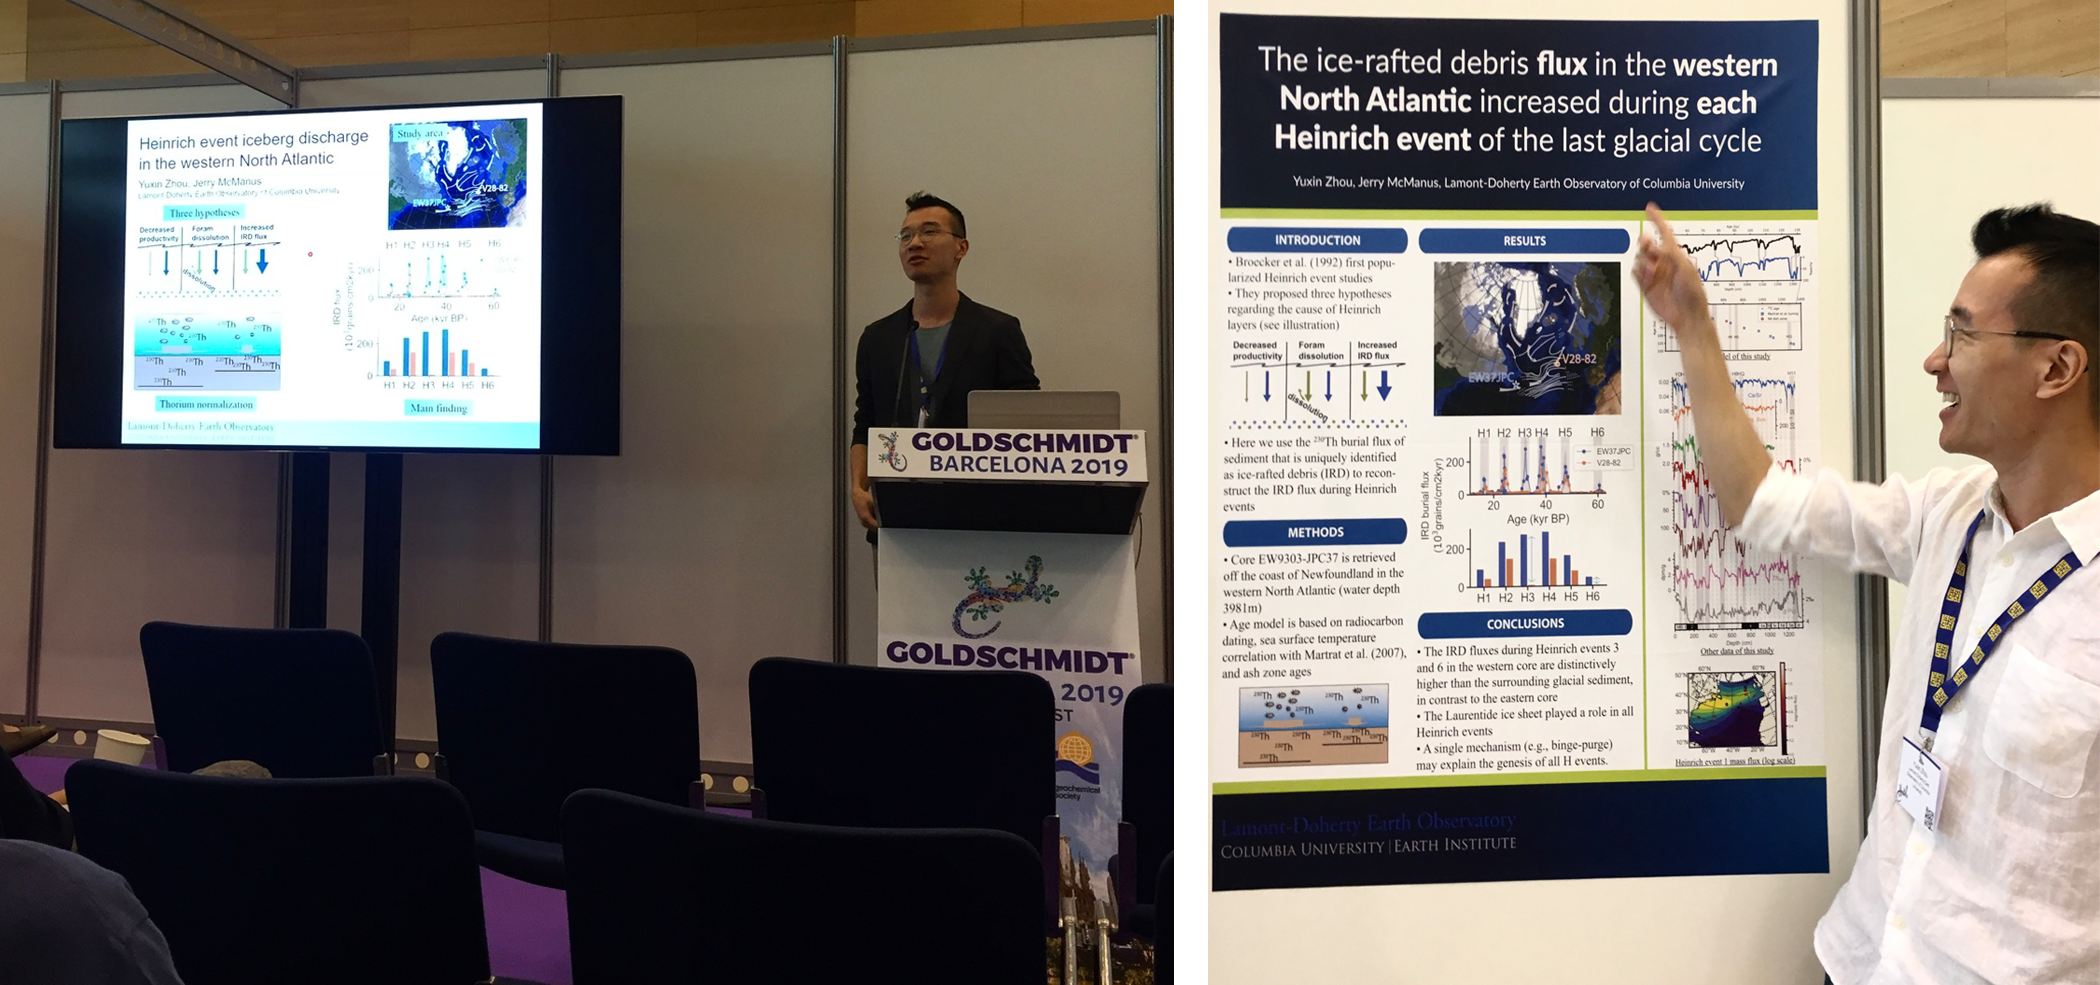 Yuxin Zhou standing at a podium presenting his research at the Goldschmidt geochemistry conference in Barcelona.